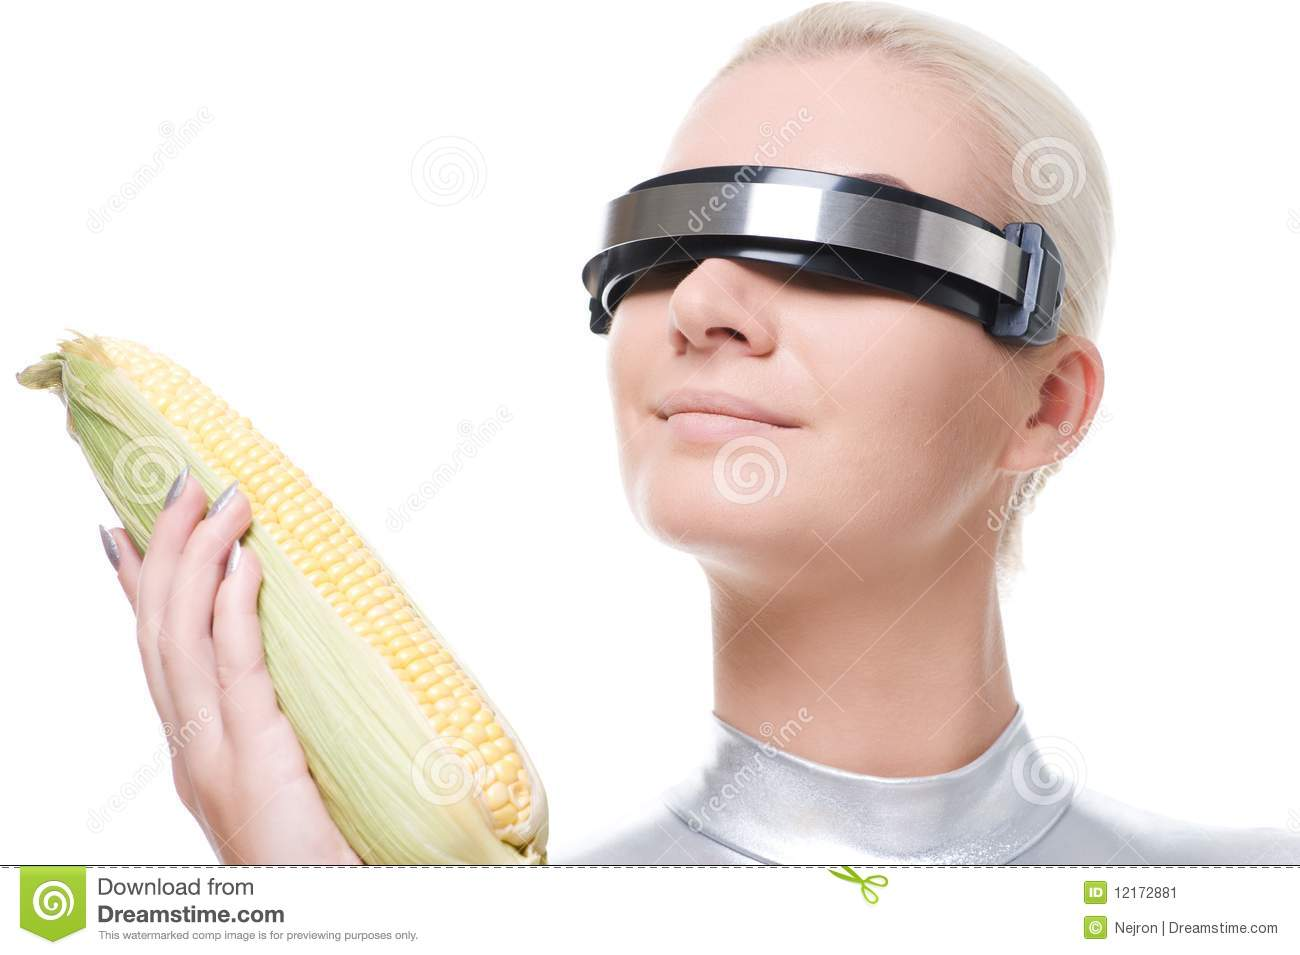 Cyber Woman With A Corn Stock Image - Image: 12172881